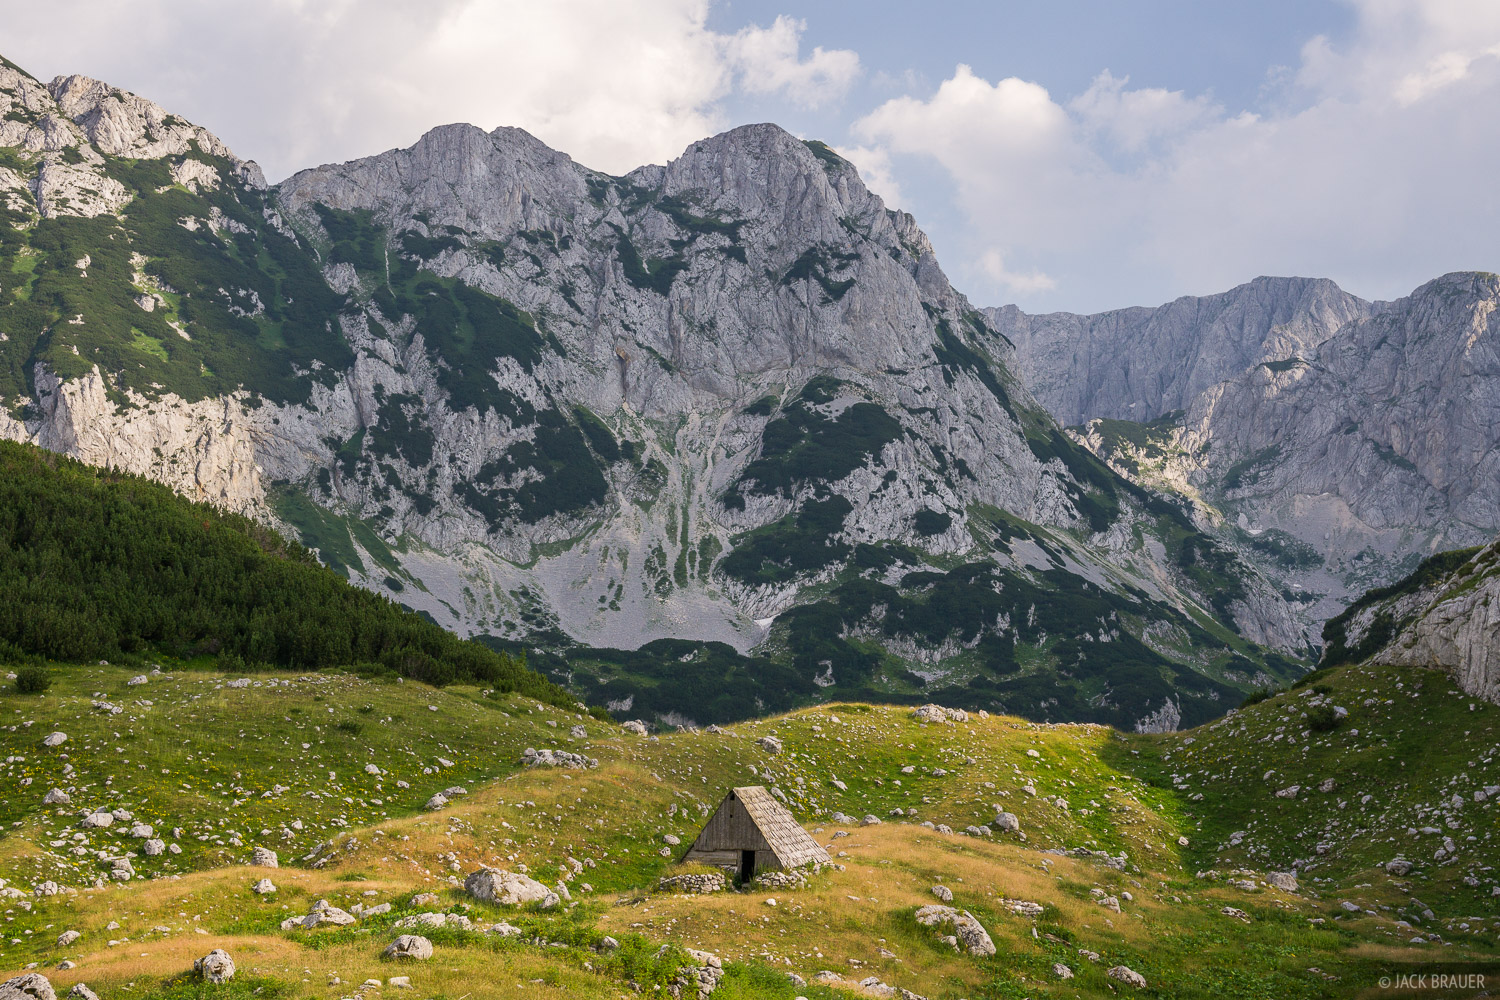 Dinaric Alps,Durmitor,Durmitor National Park,Europe,Montenegro, Medjed, katun, photo